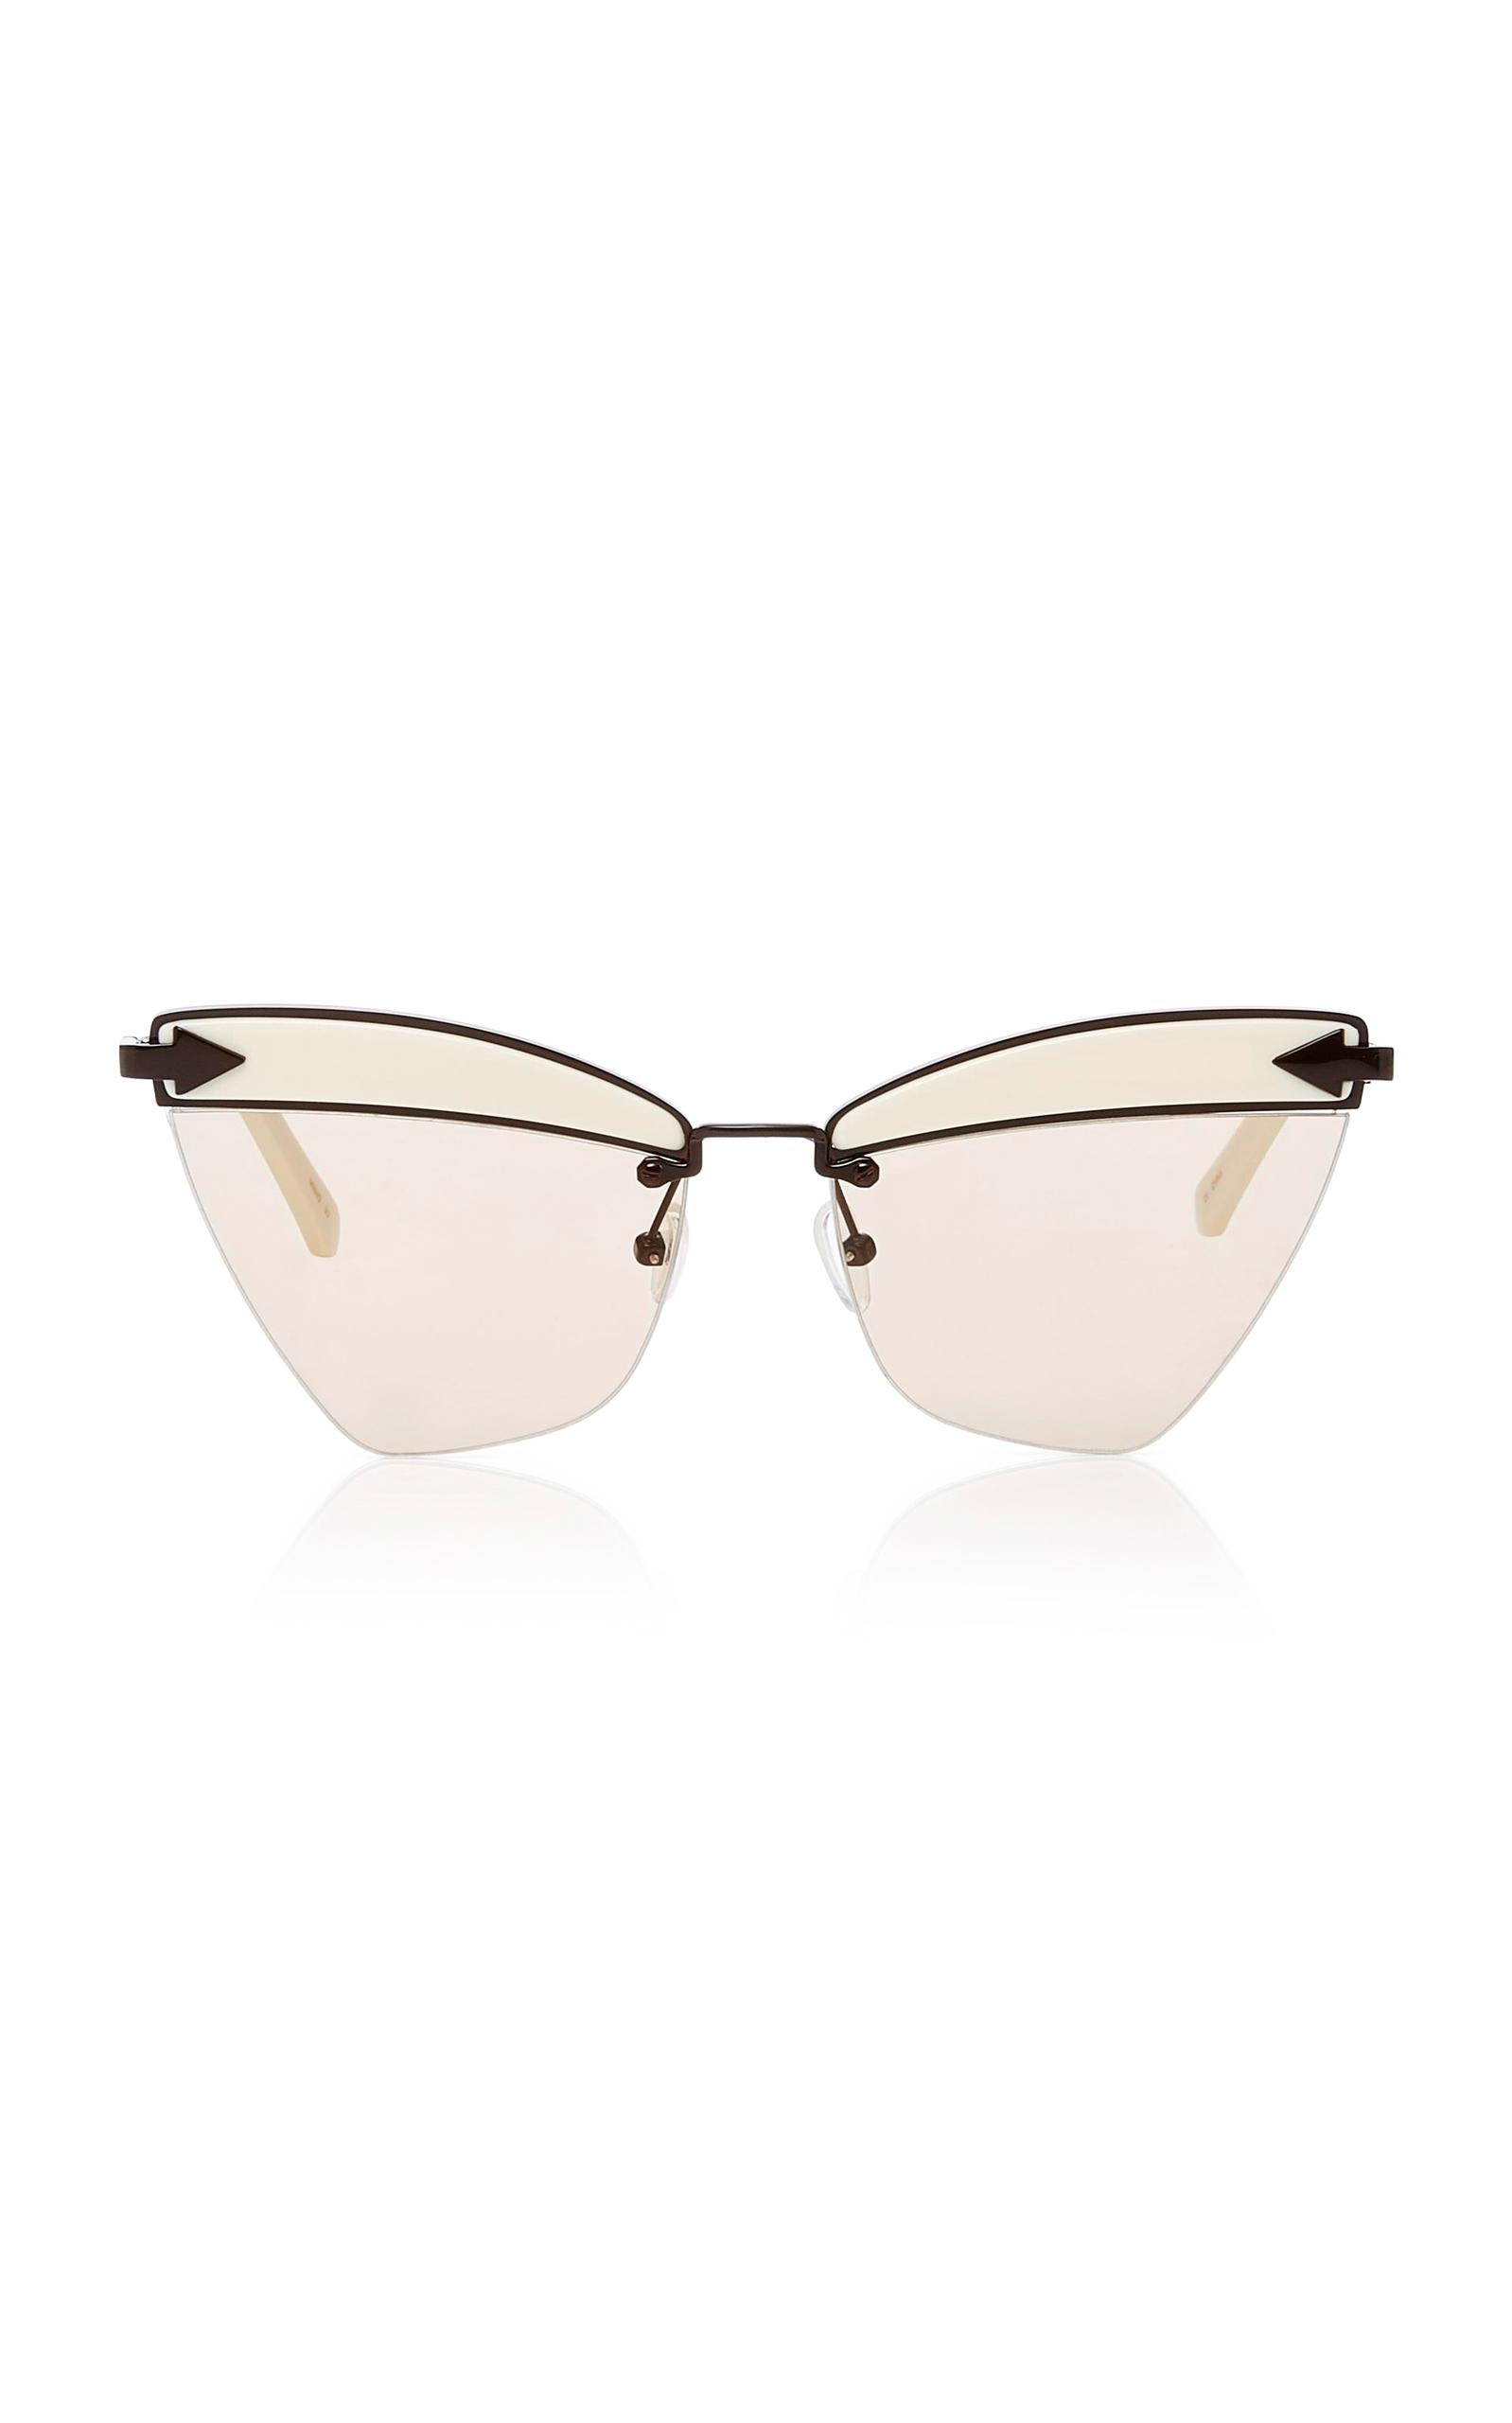 c443b13e7516 Karen Walker Sadie Cat-eye Acetate And Metal Sunglasses in White - Lyst